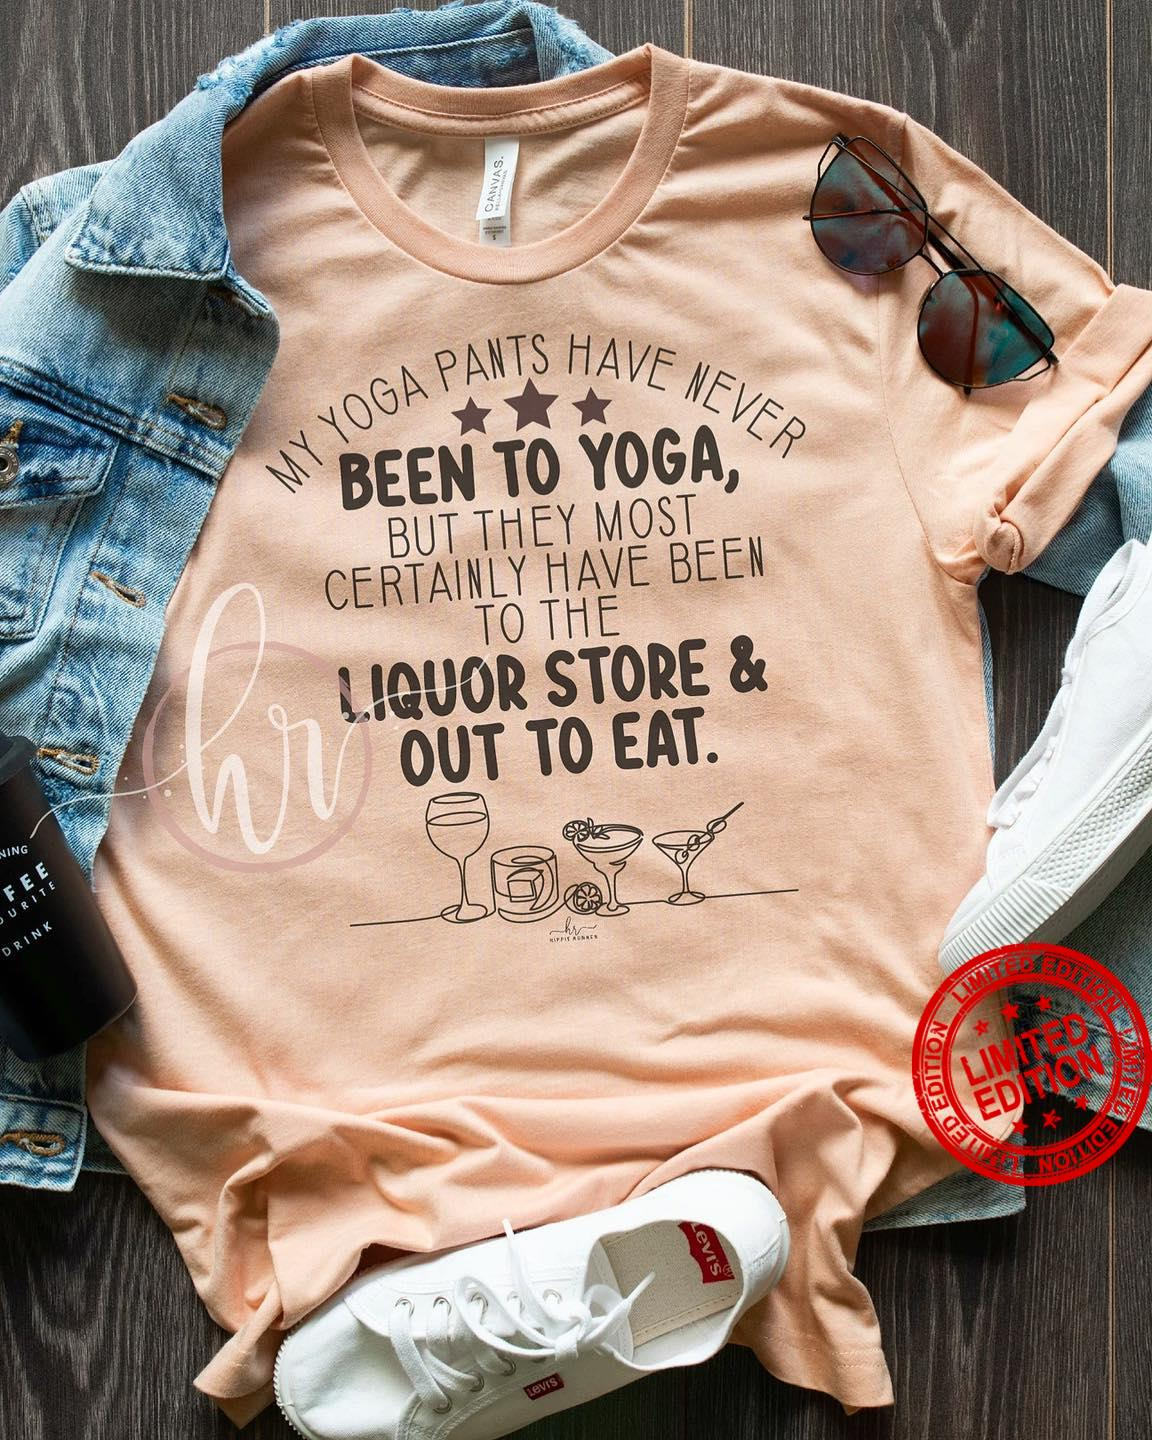 My Yoga Pants Have Never Been To Yoga But They Most Certainly Have Been To The Liquor Store Shirt